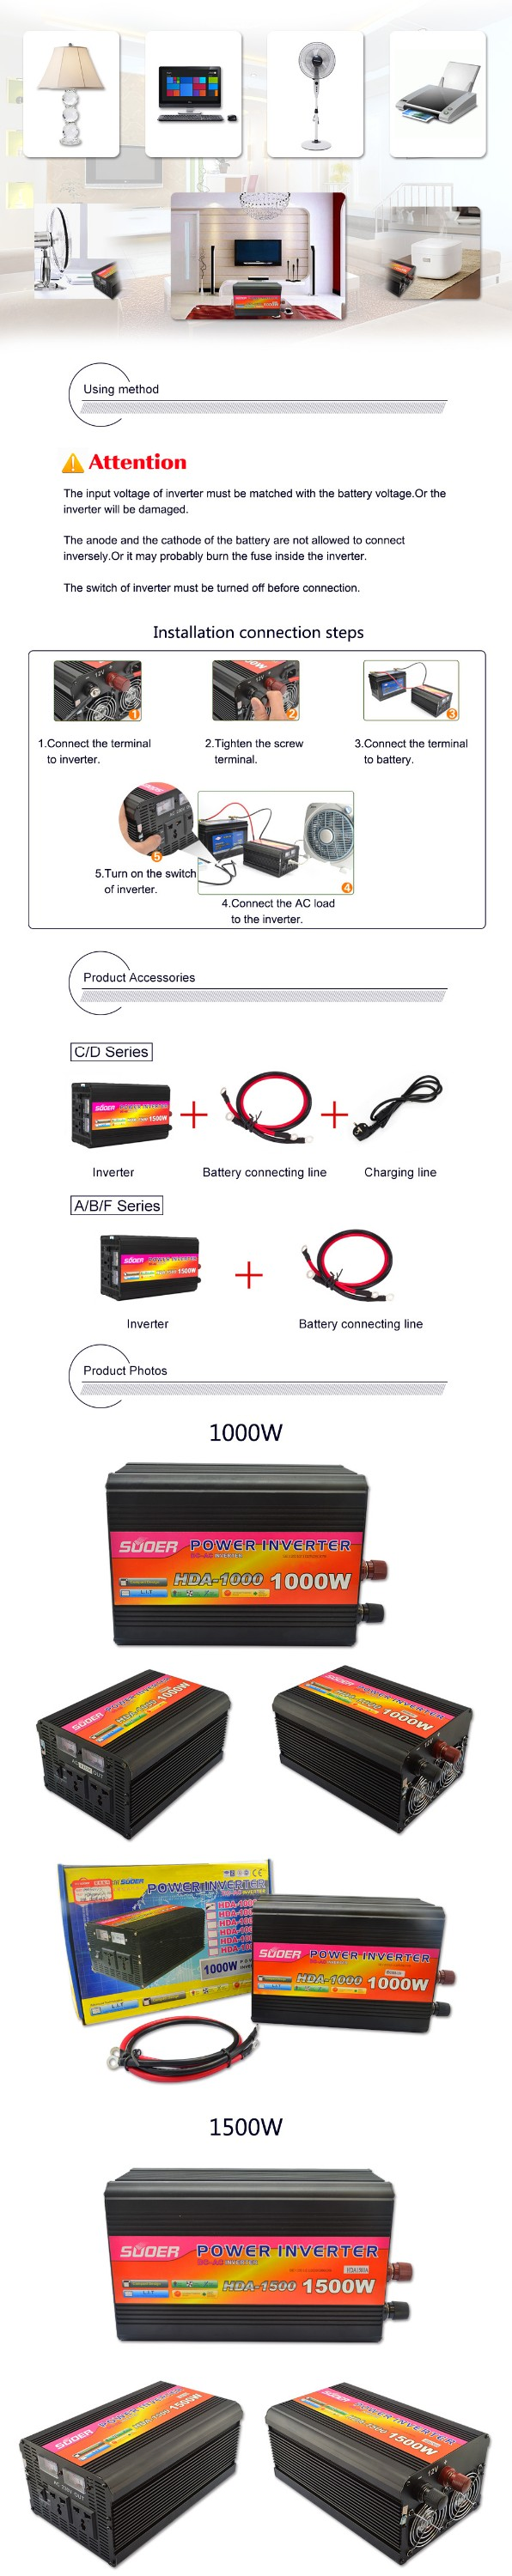 1000 Watt Power Inverter 12v Dc To Ac With Battery 220v Circuit Charging Function Charger